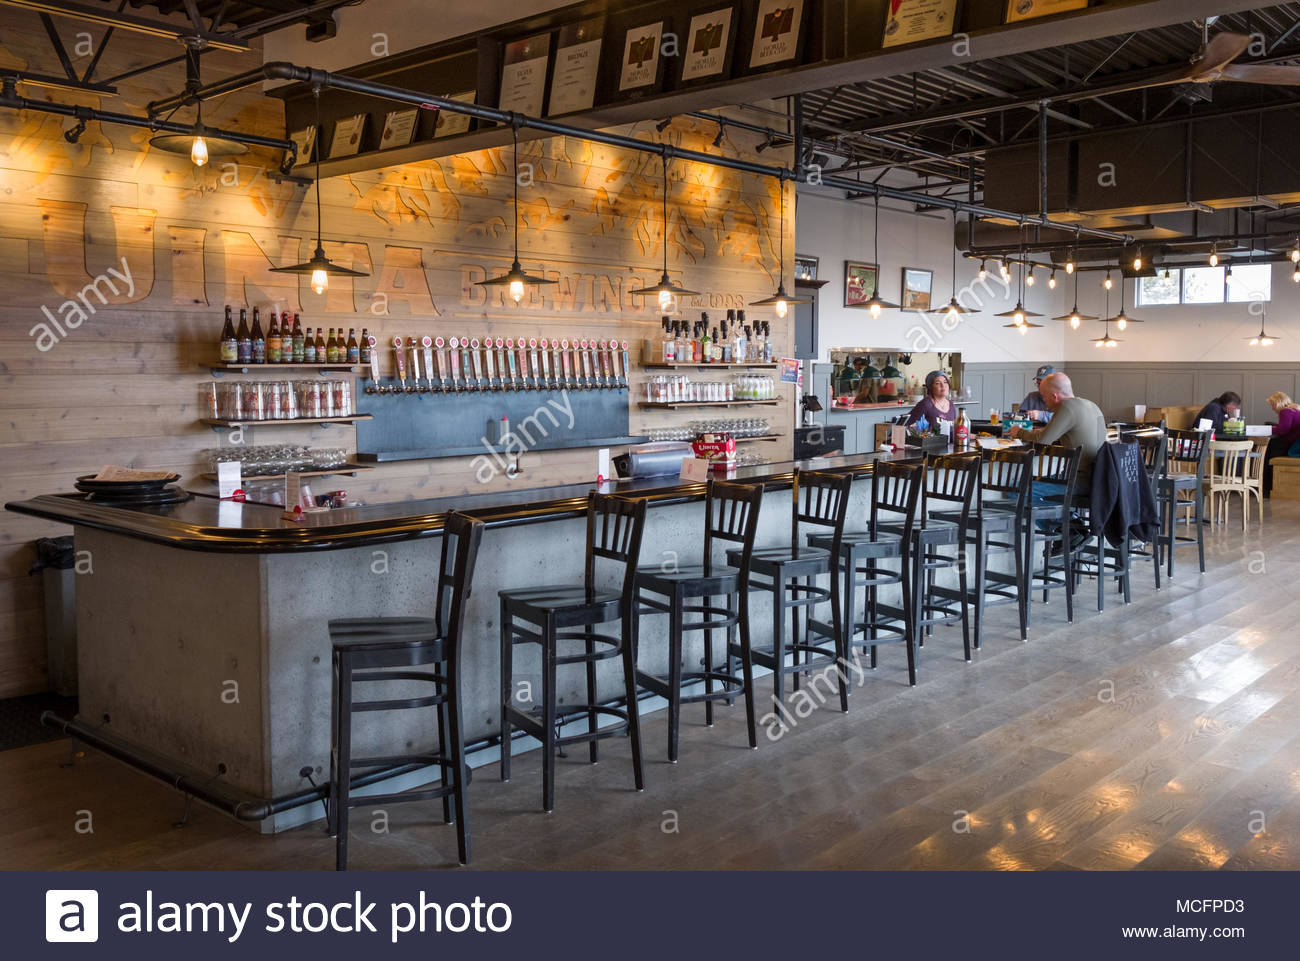 Woman Behind Counter Serving Drinks And Talking With Men Sitting At